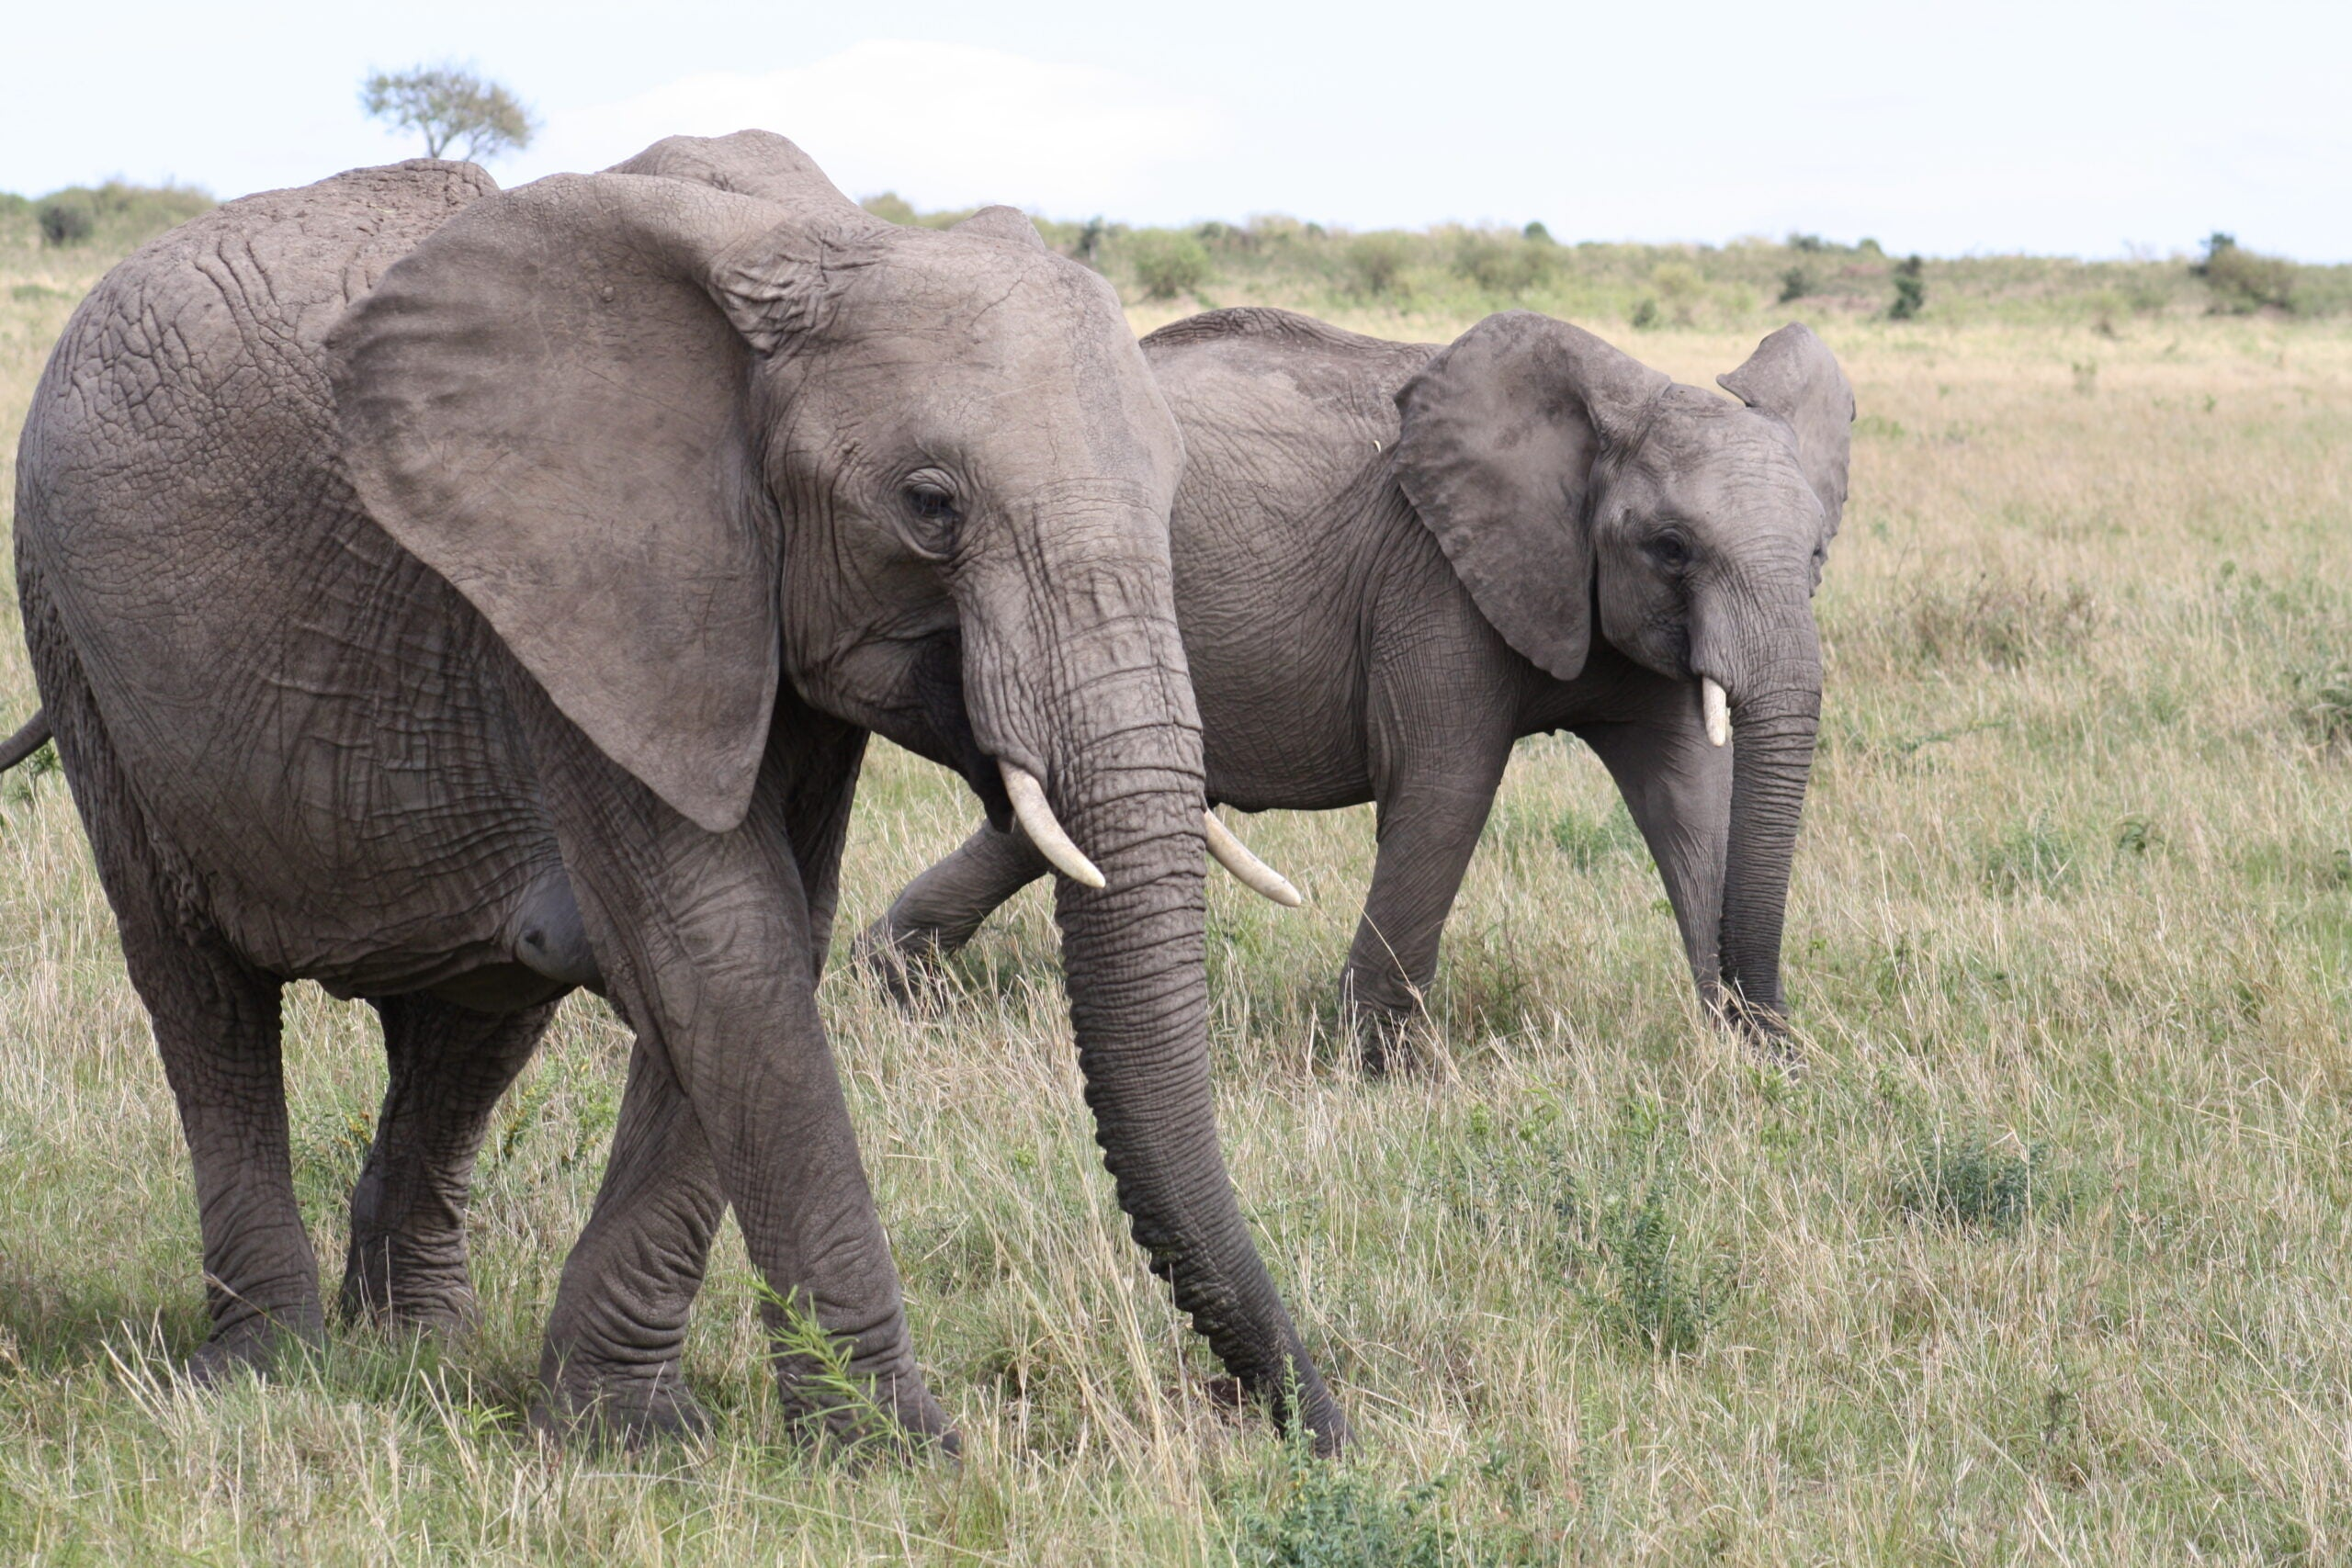 Elephants Able To Detect Rainstorms 150 Miles Away